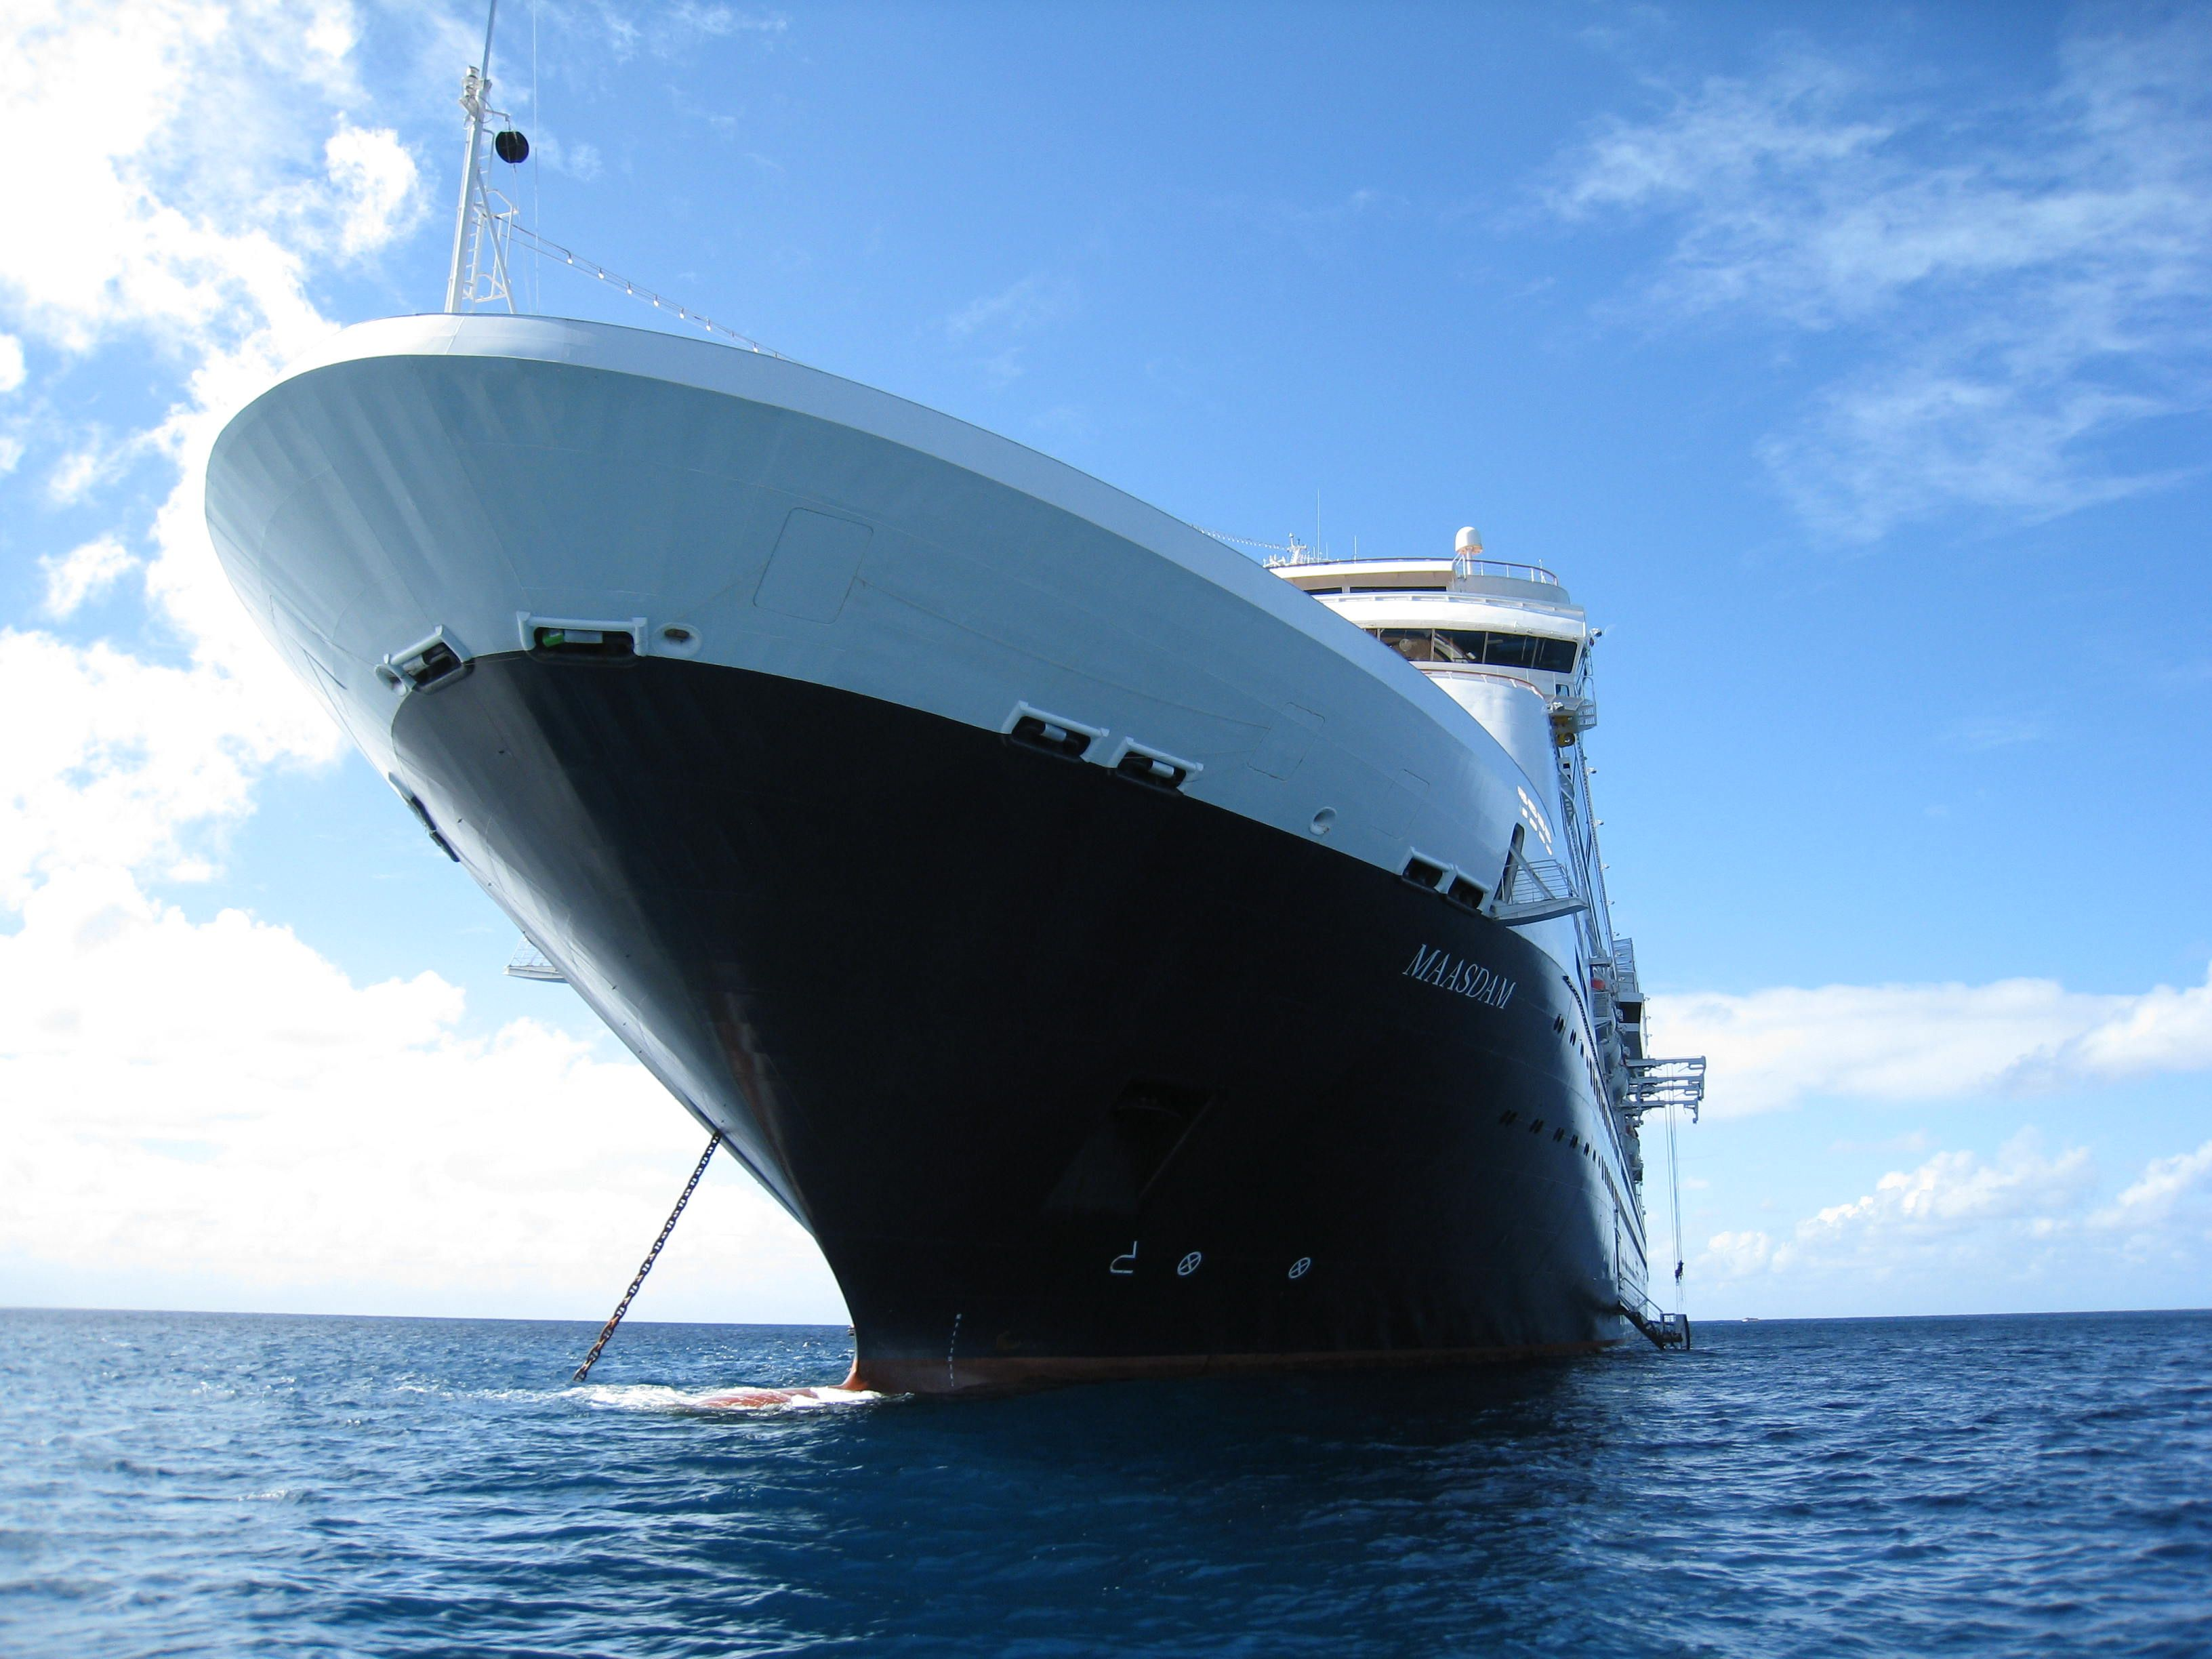 The MS Maasdam. One of our favorite @HALcruises ships!